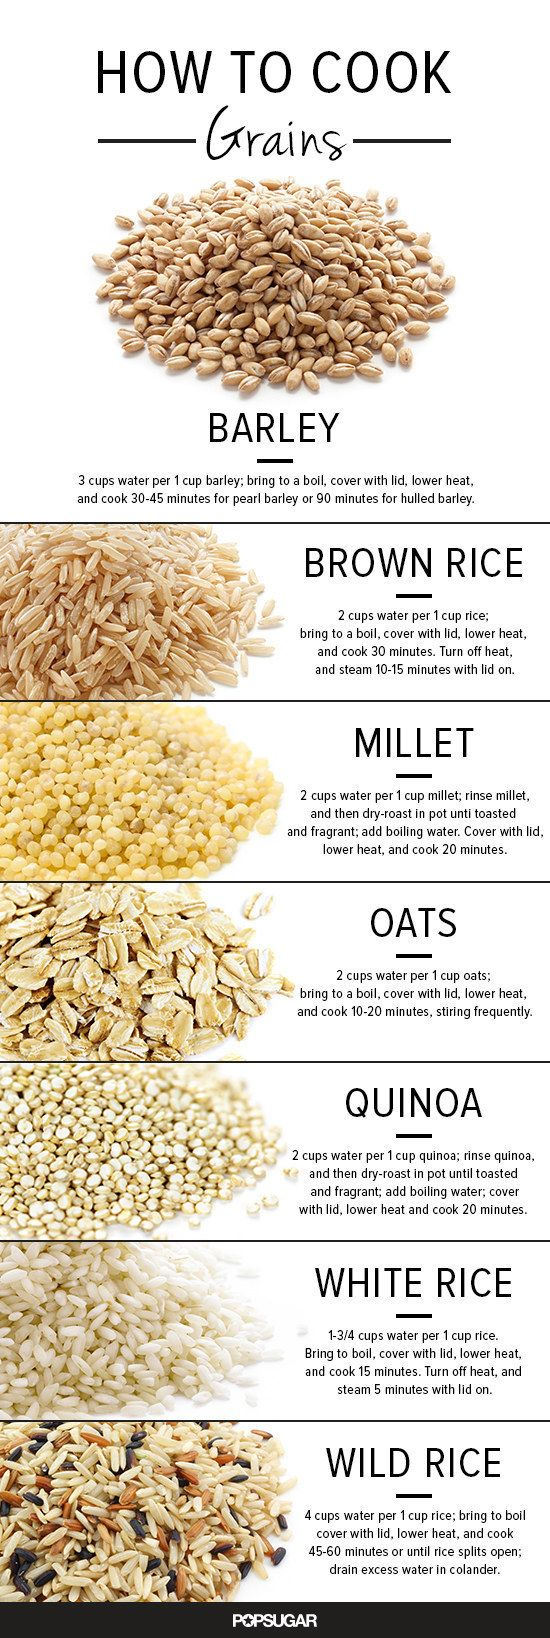 For directions on how to make every kind of grain...